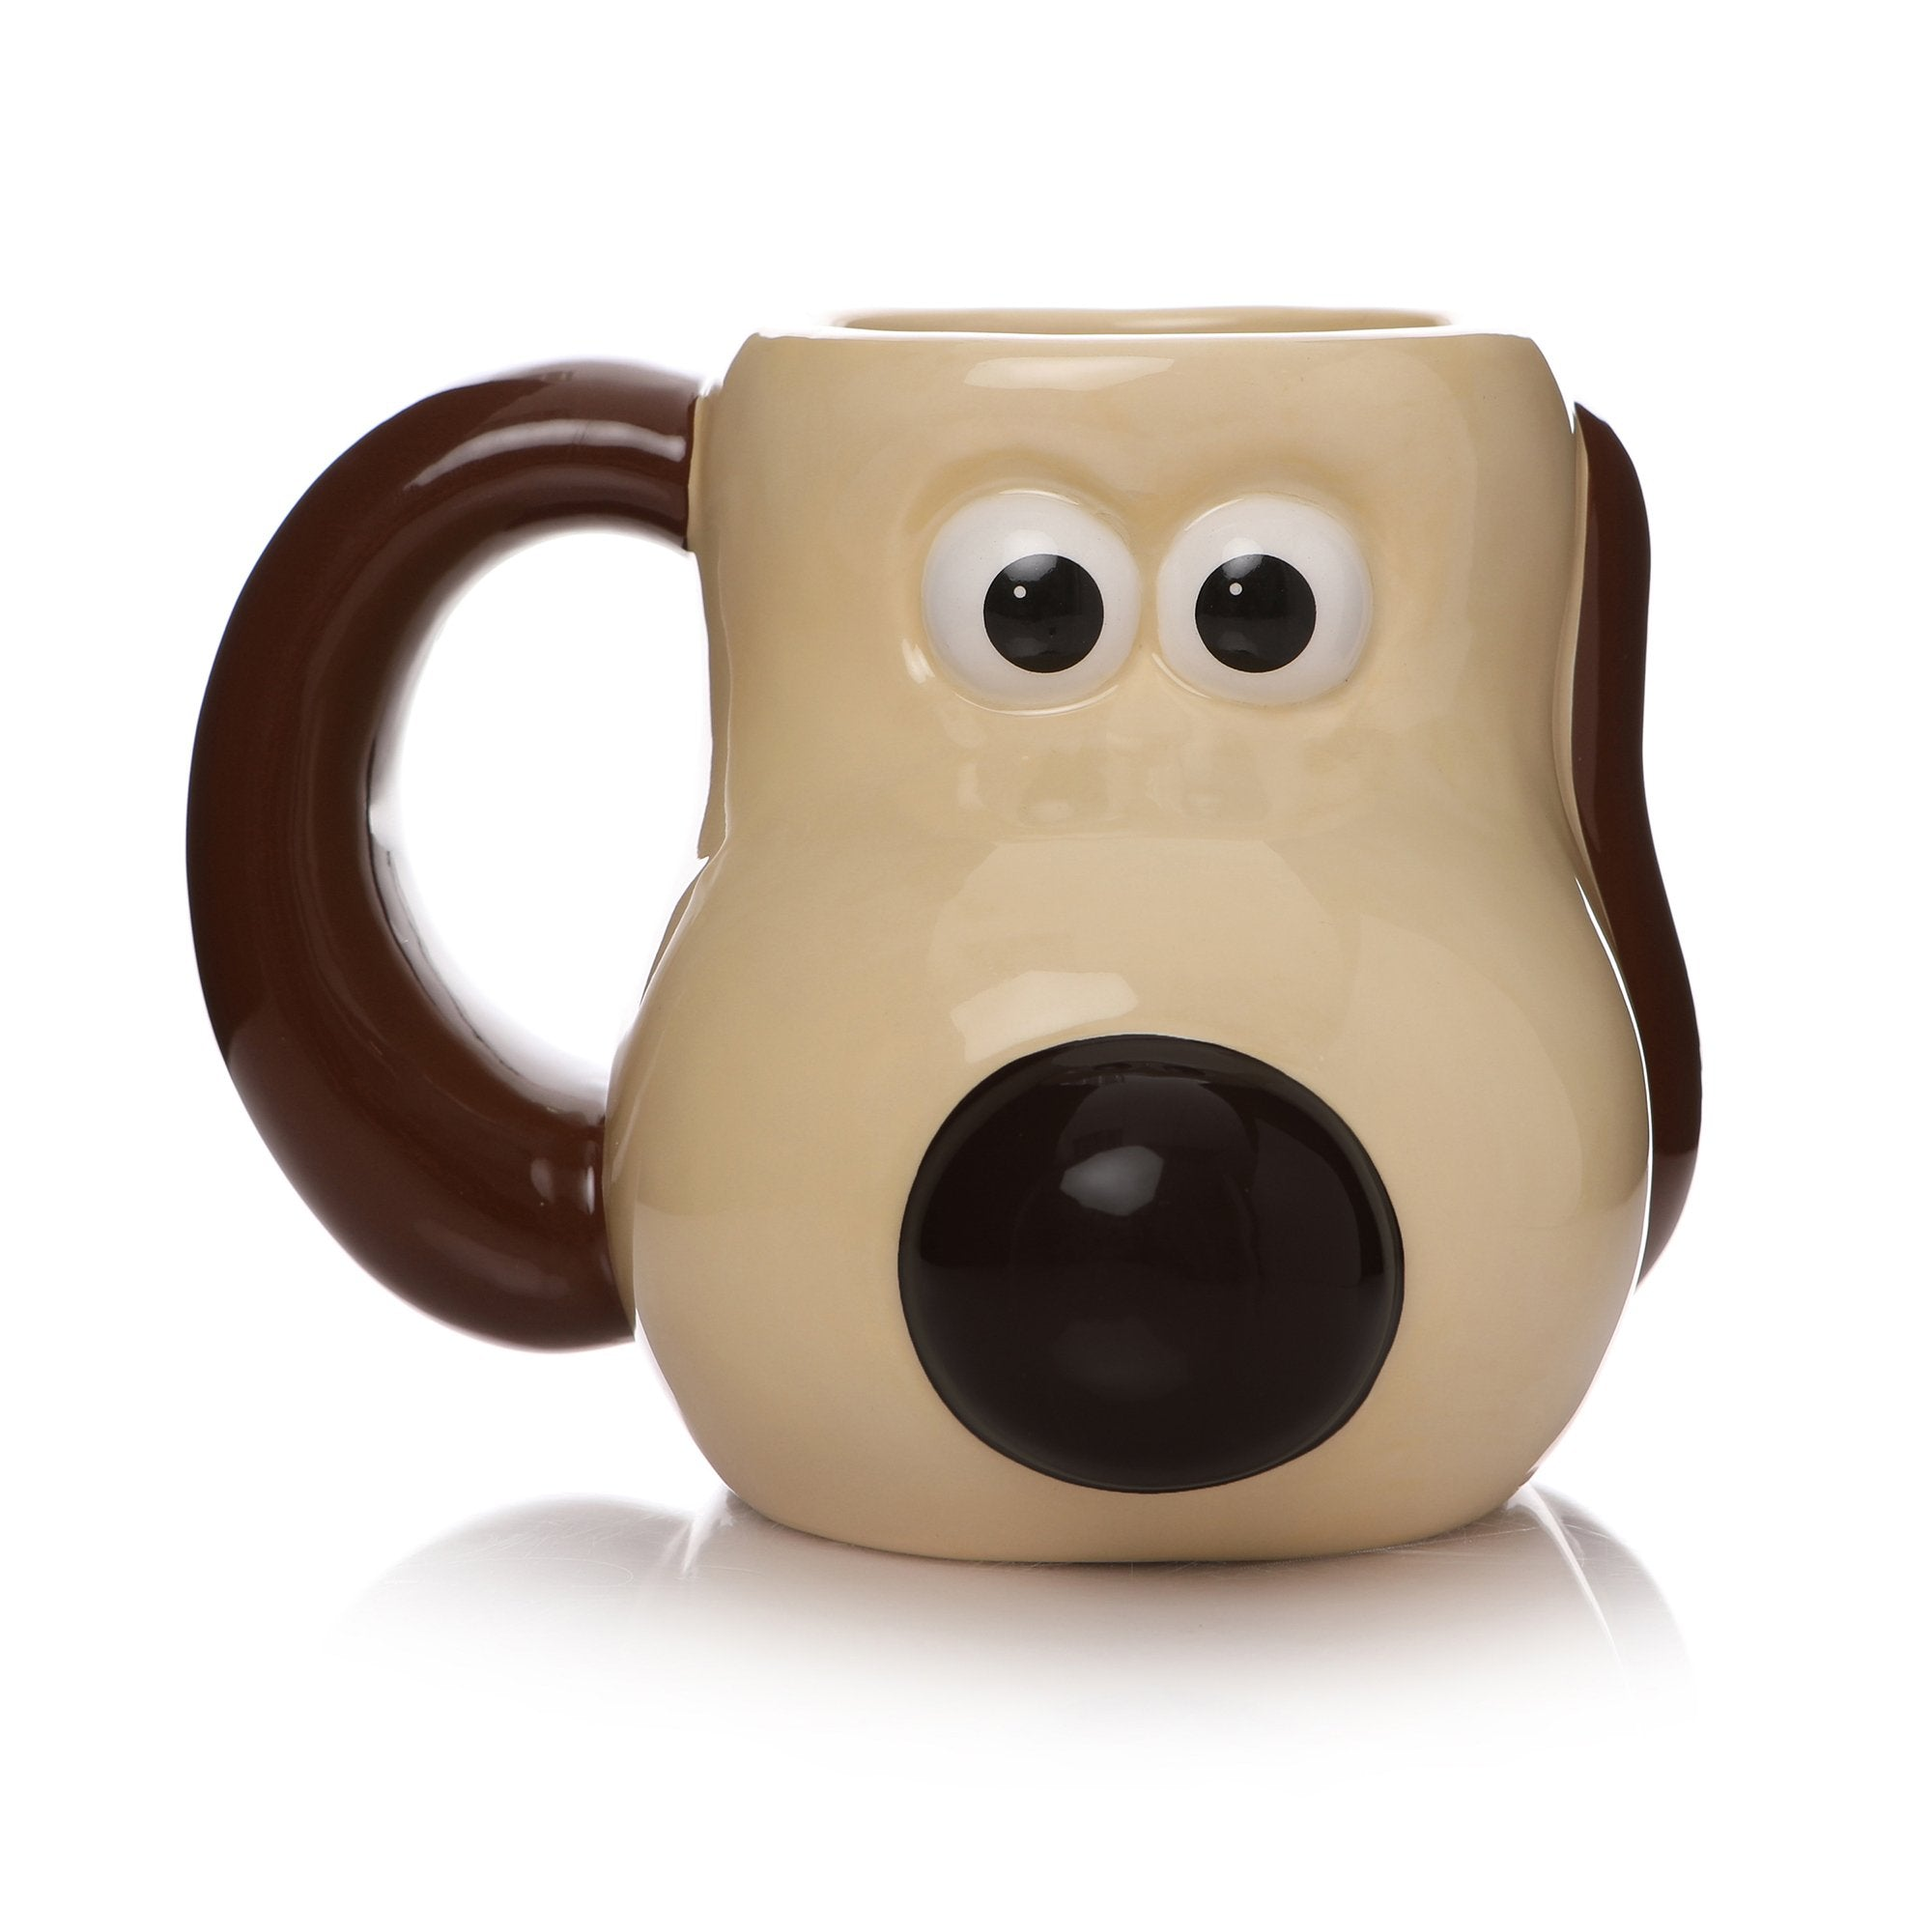 Aardman Wallace and Gromit Shaped Mug - Gromit - Half Moon Bay US